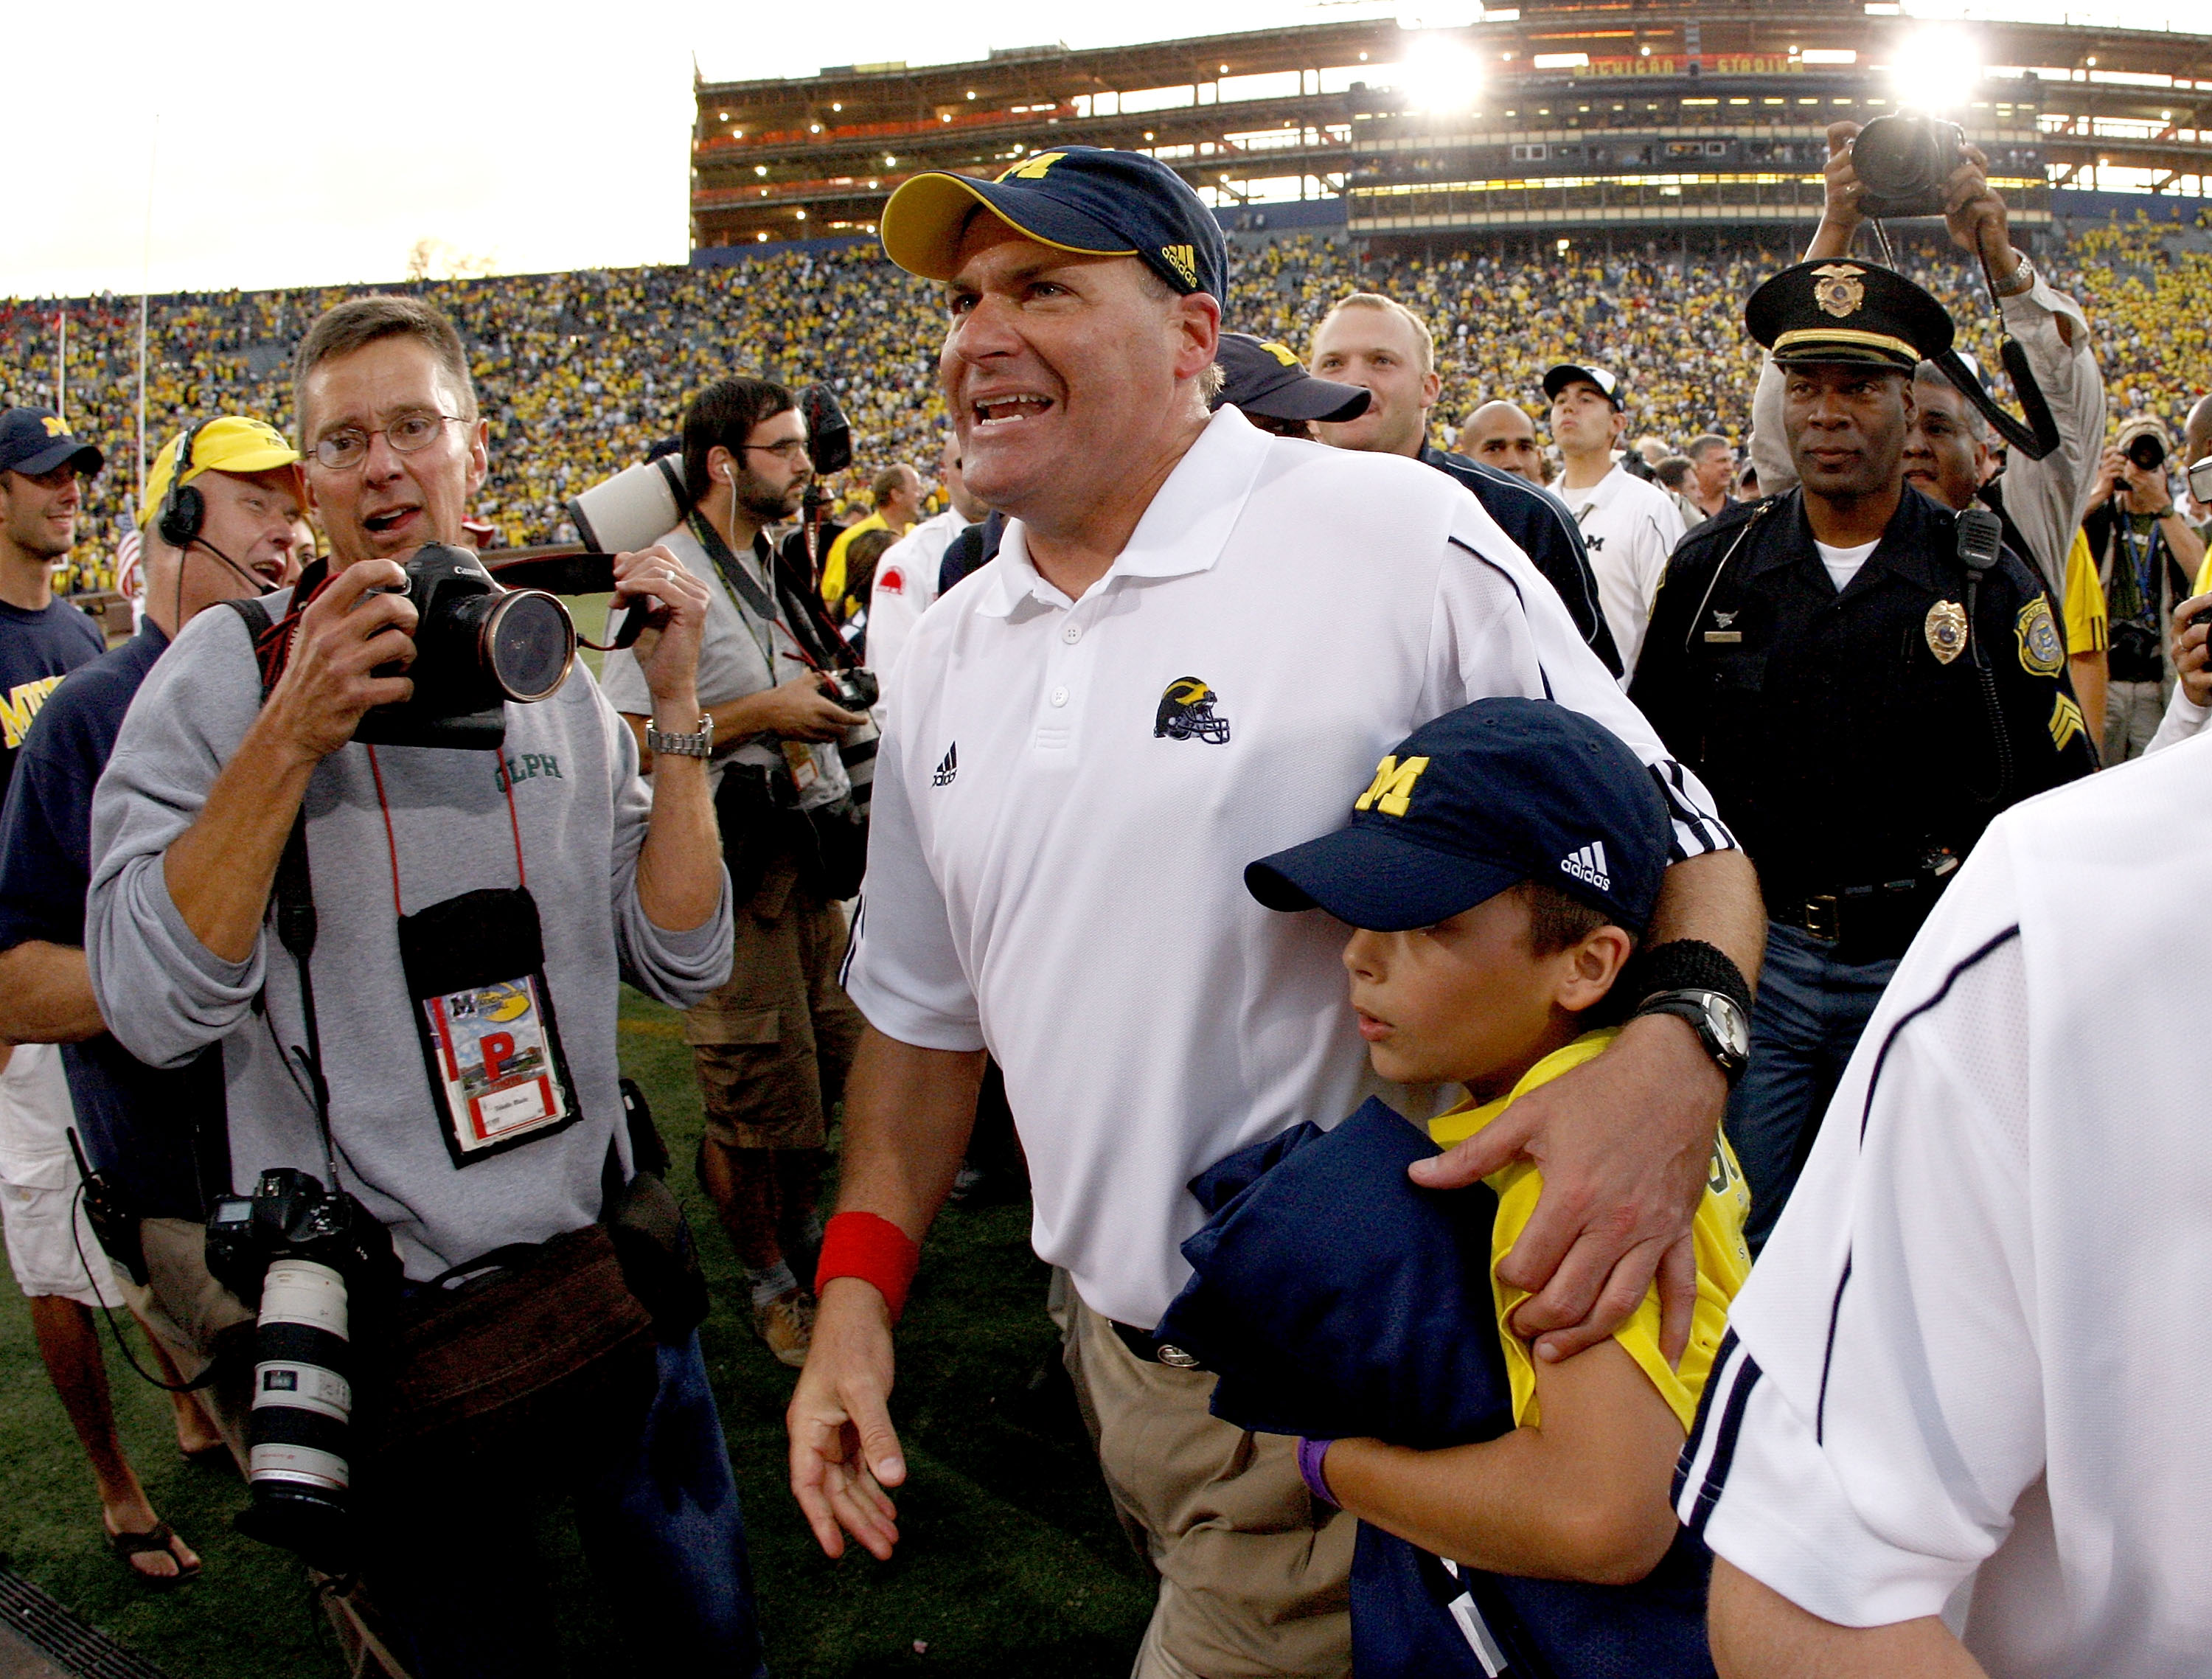 ANN ARBOR, MI - SEPTEMBER 27:  Head coach Rich Rodriguez of the Michigan Wolverines leaves the field with his son Rhett after defeating the Wisconsin Badgers on September 27, 2008 at Michigan Stadium in Ann Arbor, Michigan.  (Photo by Gregory Shamus/Getty